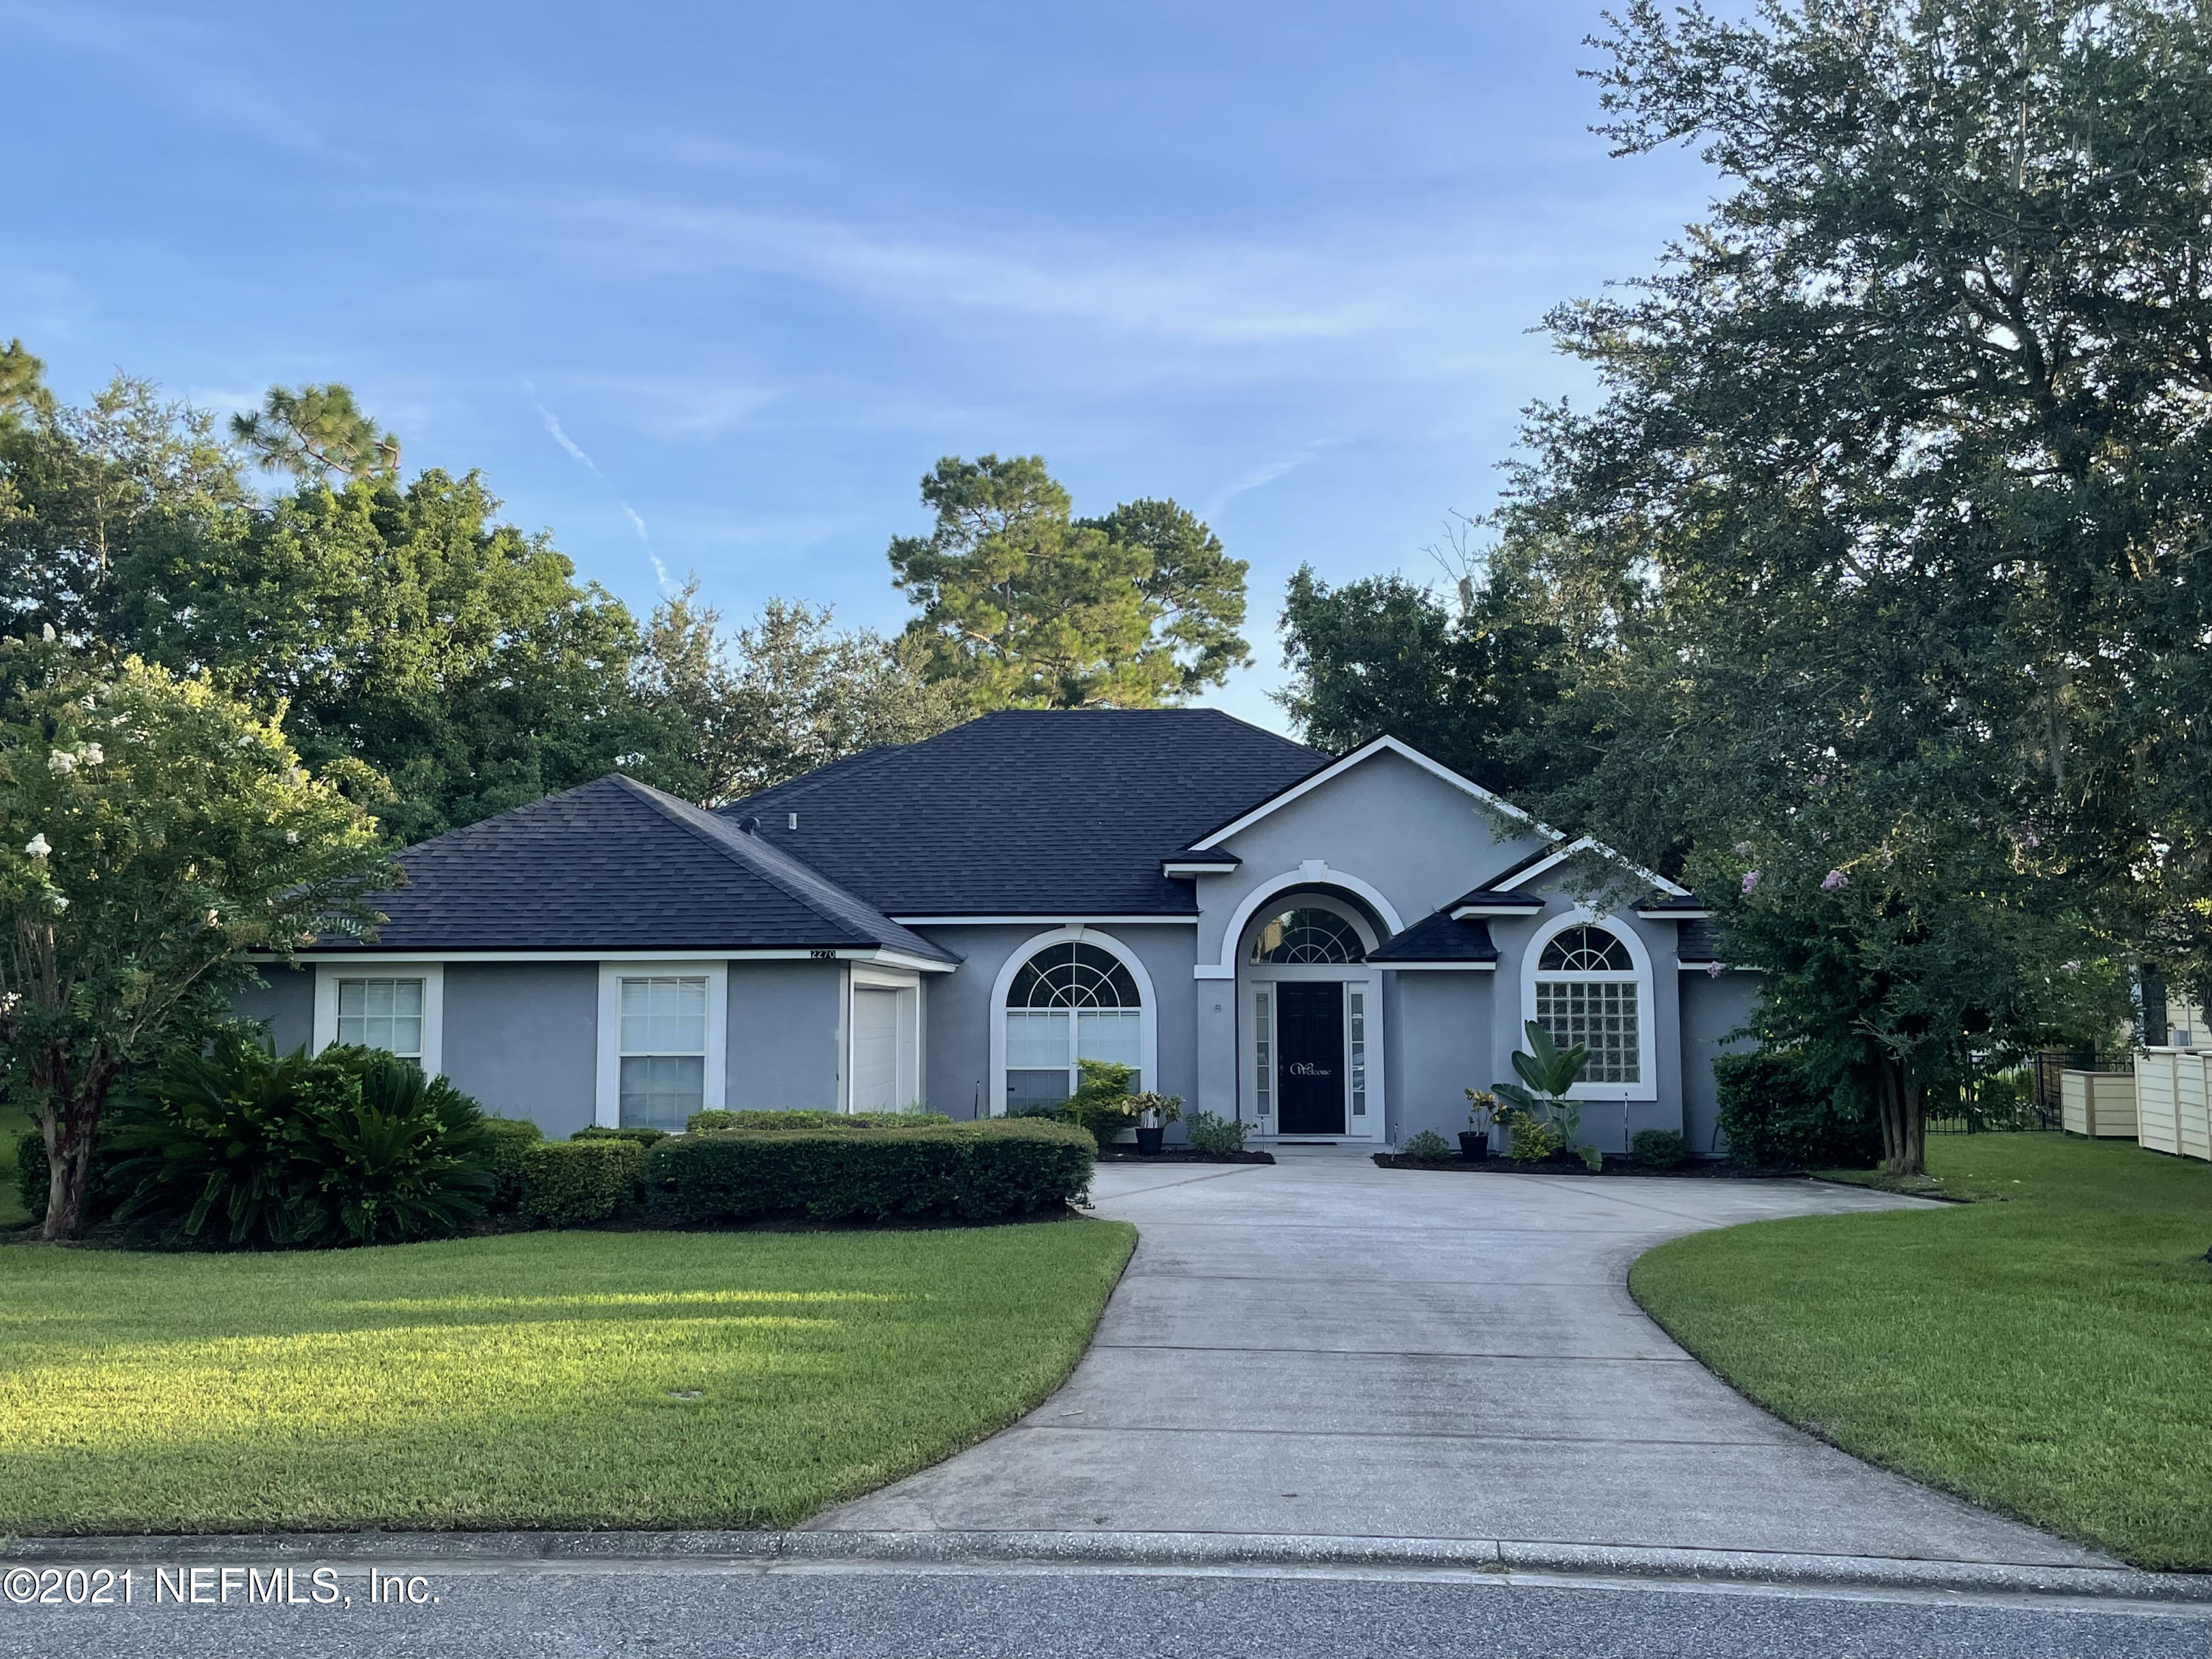 2270 KEATON CHASE, FLEMING ISLAND, FLORIDA 32003, 4 Bedrooms Bedrooms, ,3 BathroomsBathrooms,Residential,For sale,KEATON CHASE,1123626